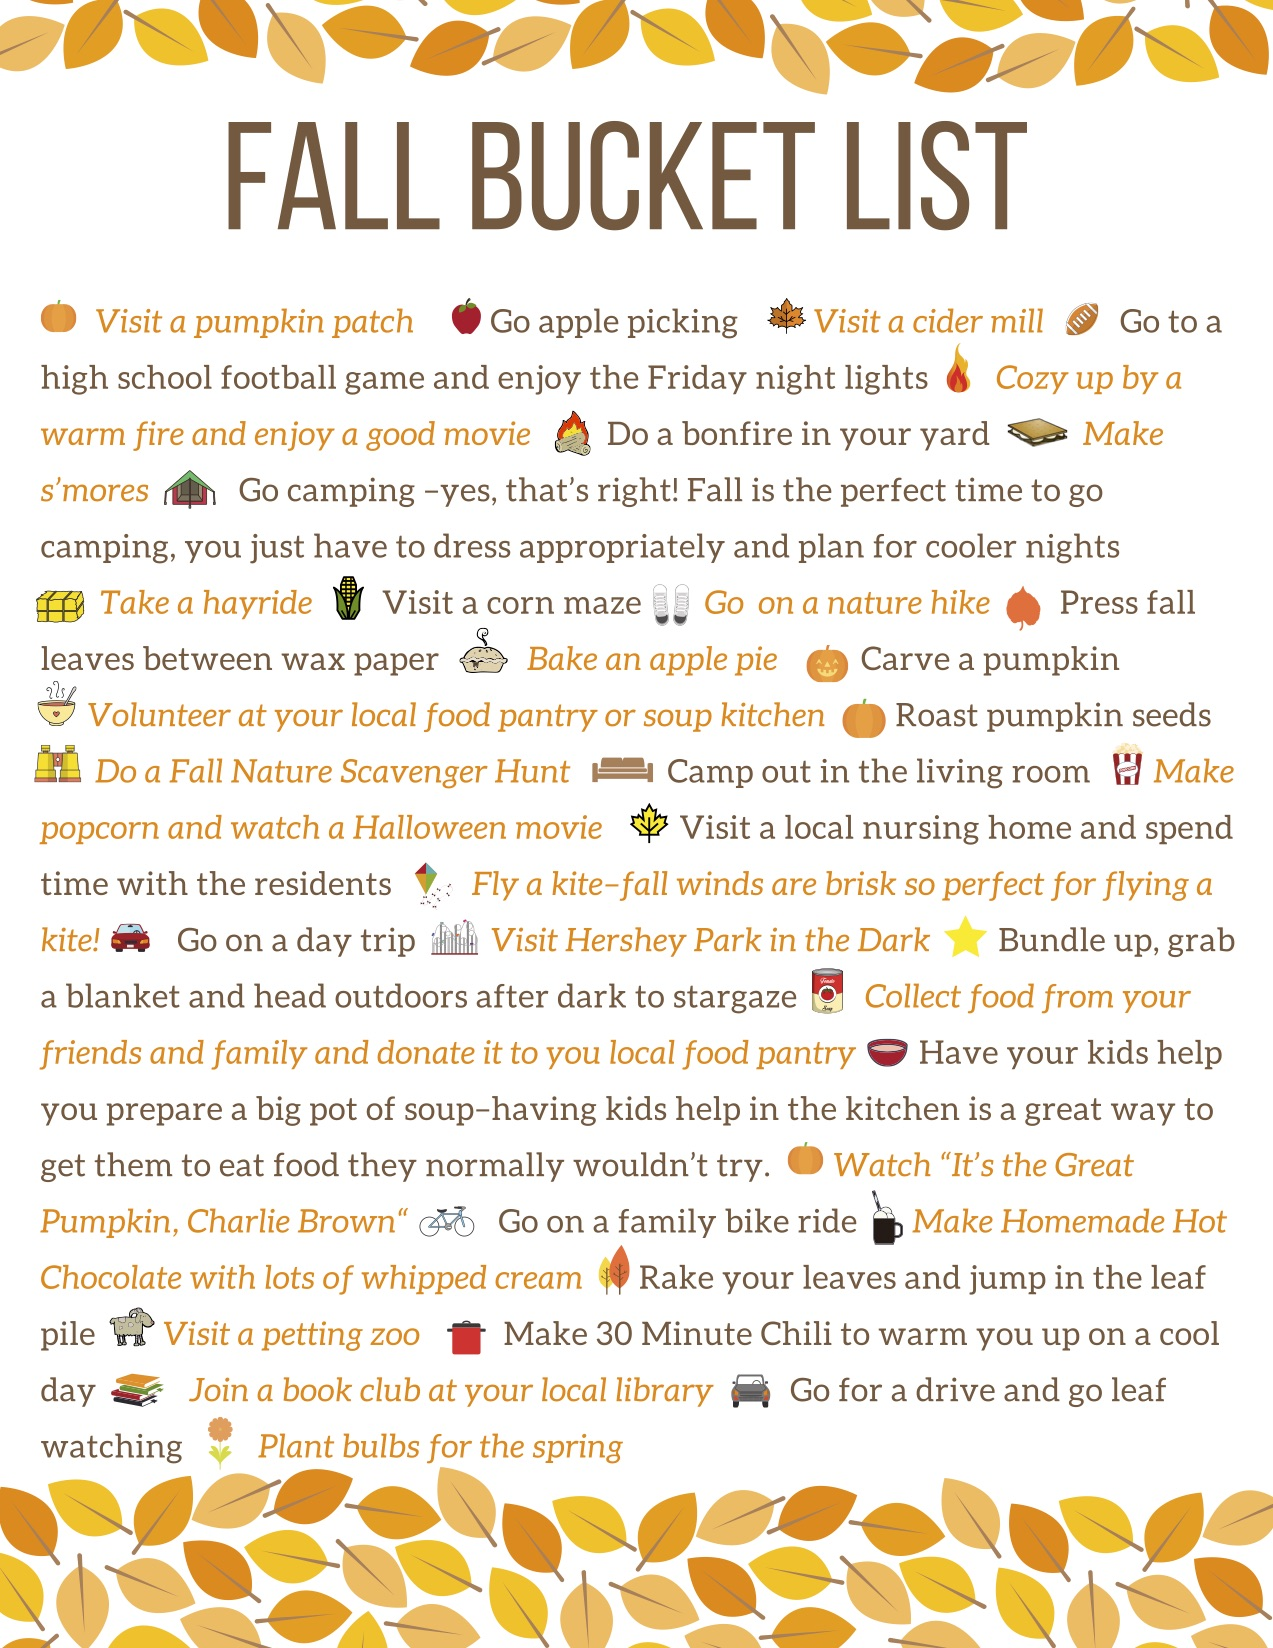 Fall Bucket List 30 Things To Do With The Kids This Fall